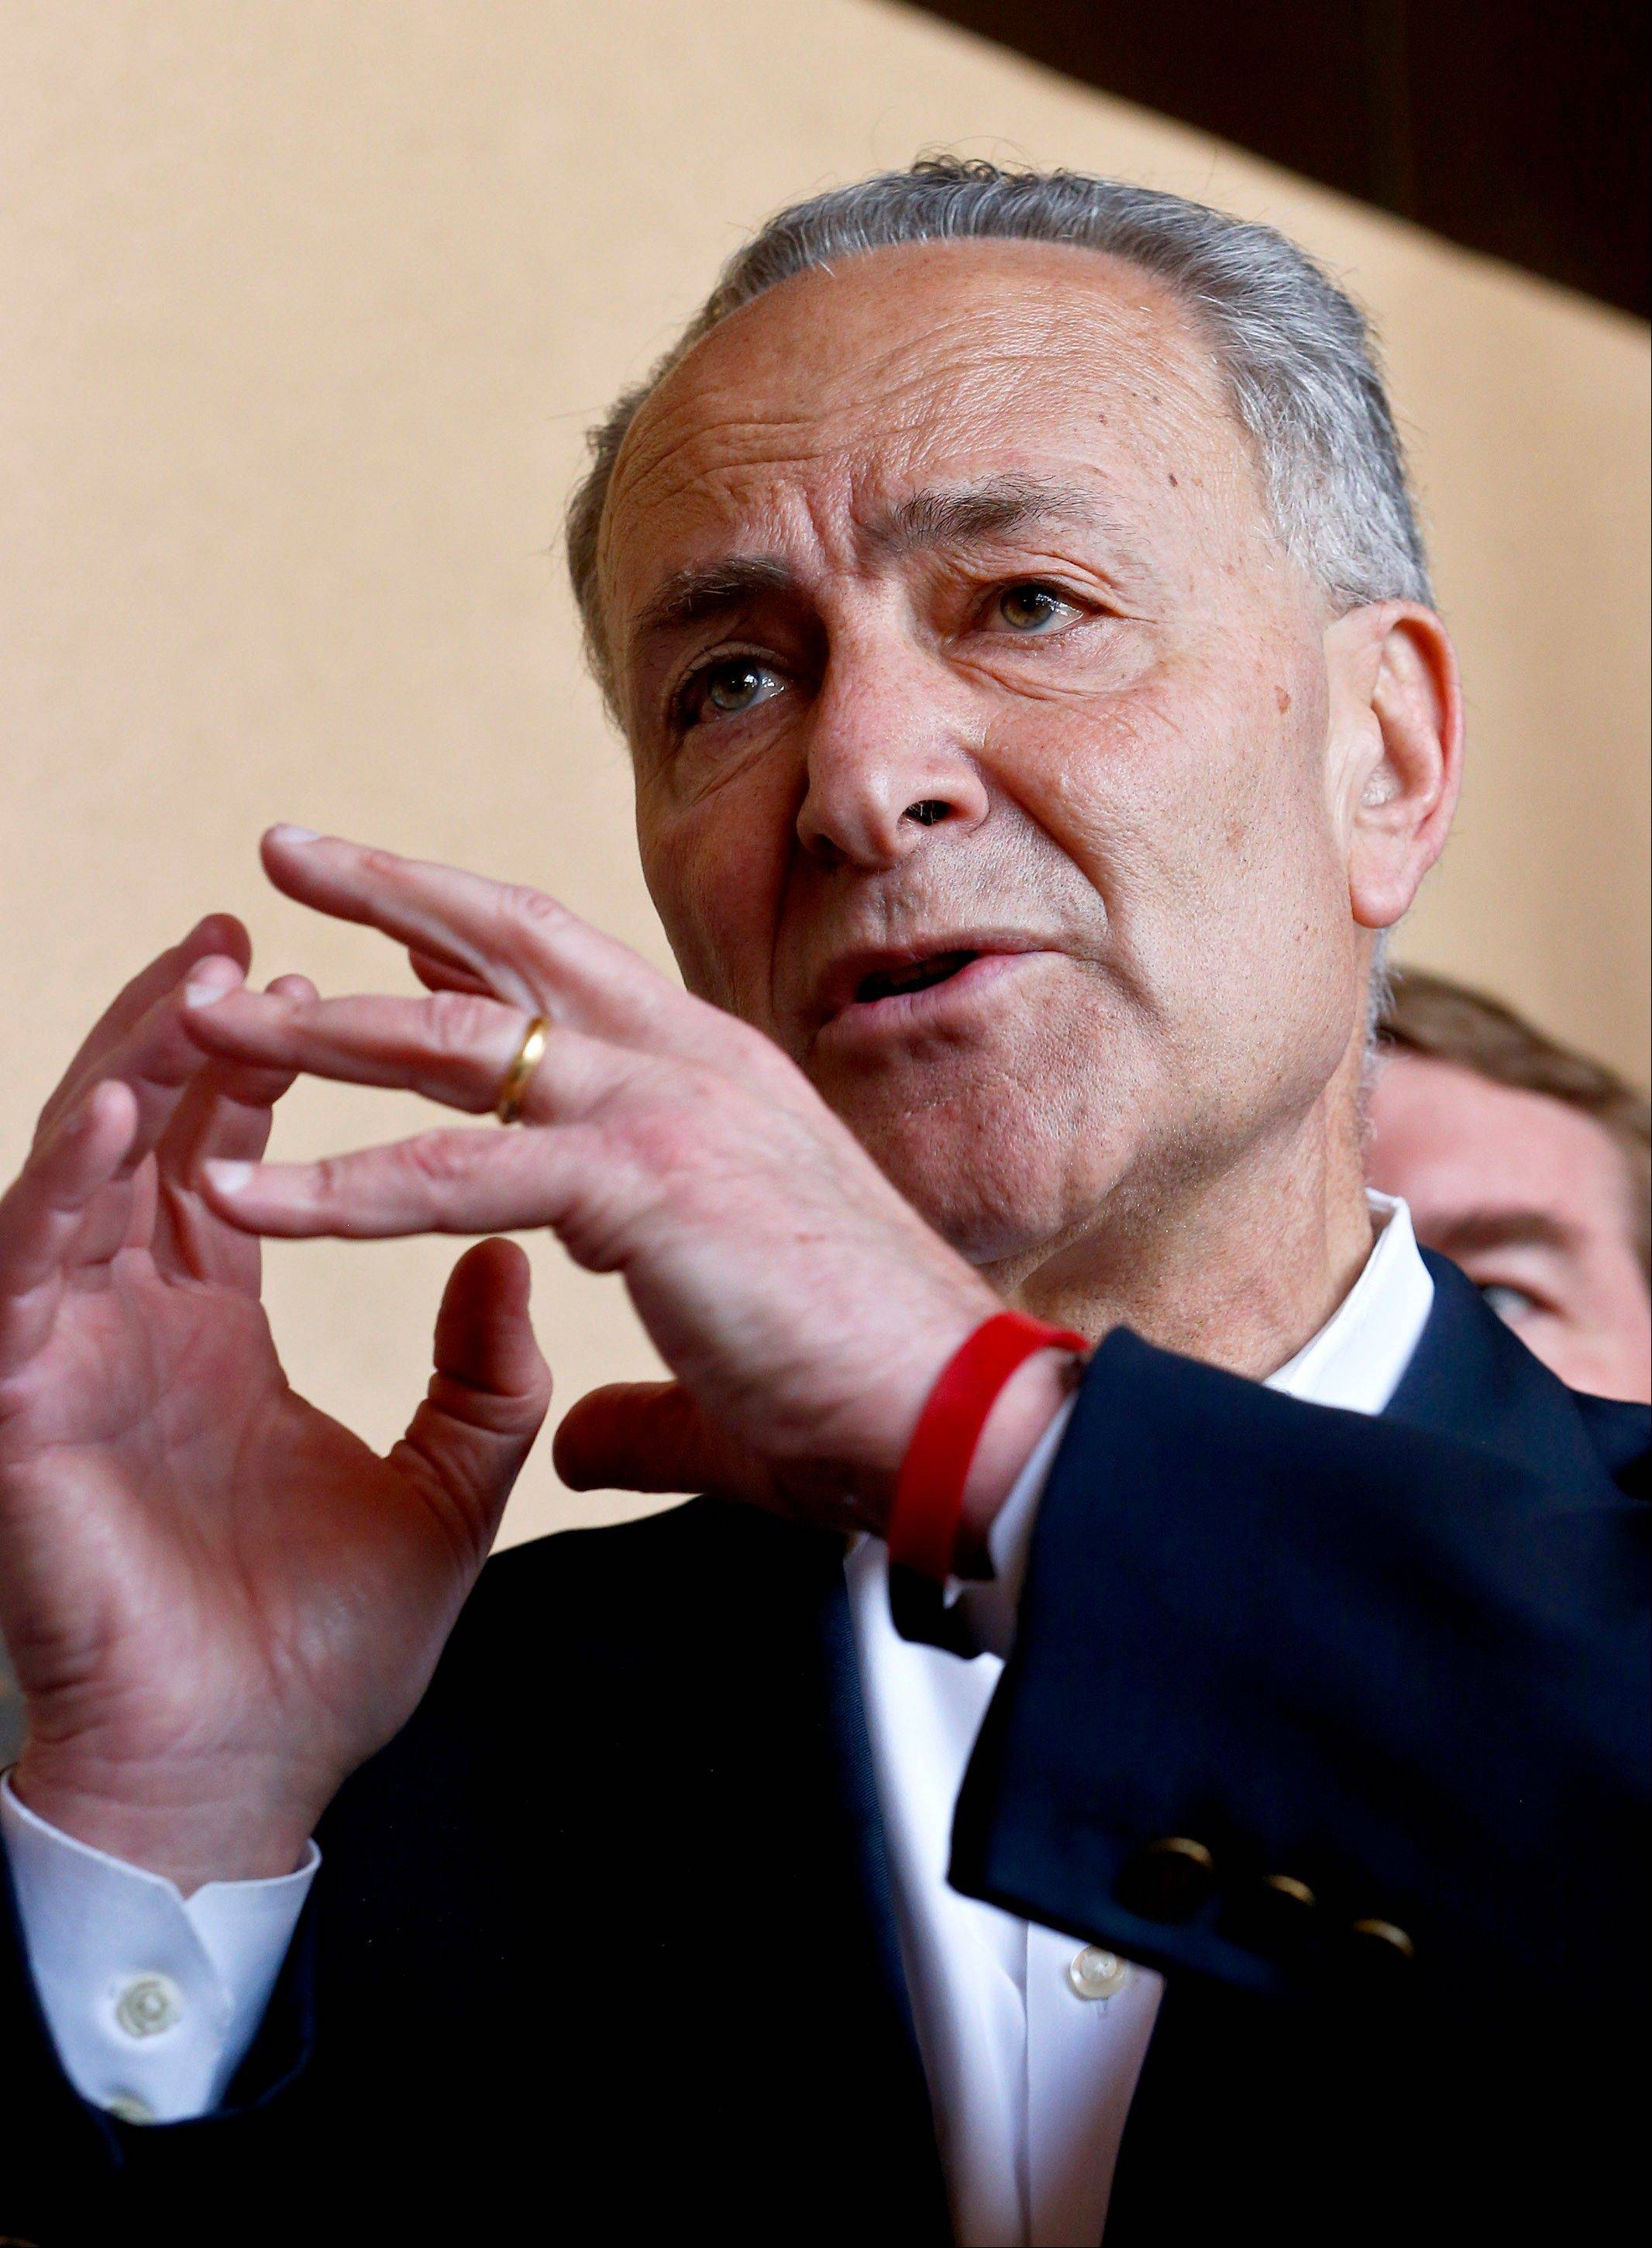 Sen. Chuck Schumer, D-N.Y., makes a point as he is joined by Sen. John McCain, R-Ariz., Sen. Jeff Flake, R-Ariz., and Sen. Michael Bennett, D-Colo., during a news conference after their tour of the Mexico border with the United States in Nogales, Ariz.